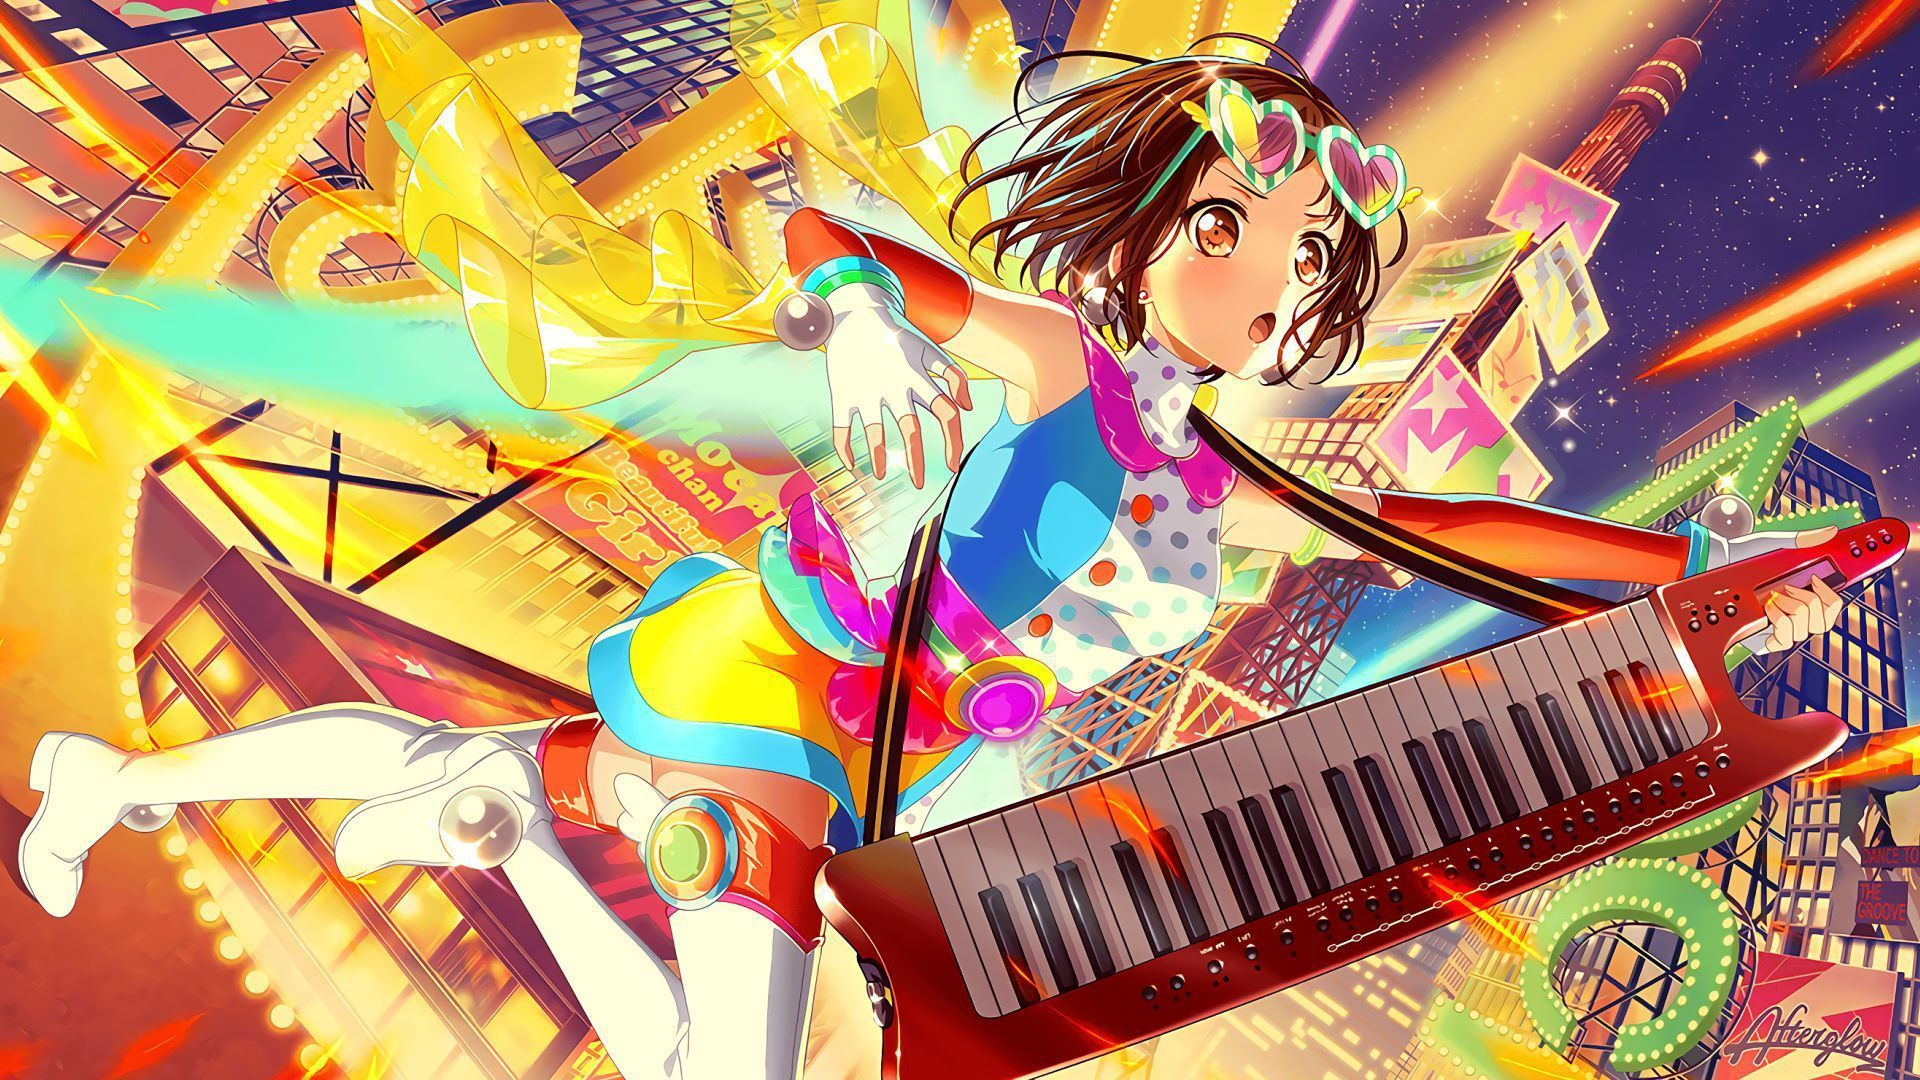 Pin by AnimeMelody on バンドリ Anime, Anime music, Girl bands